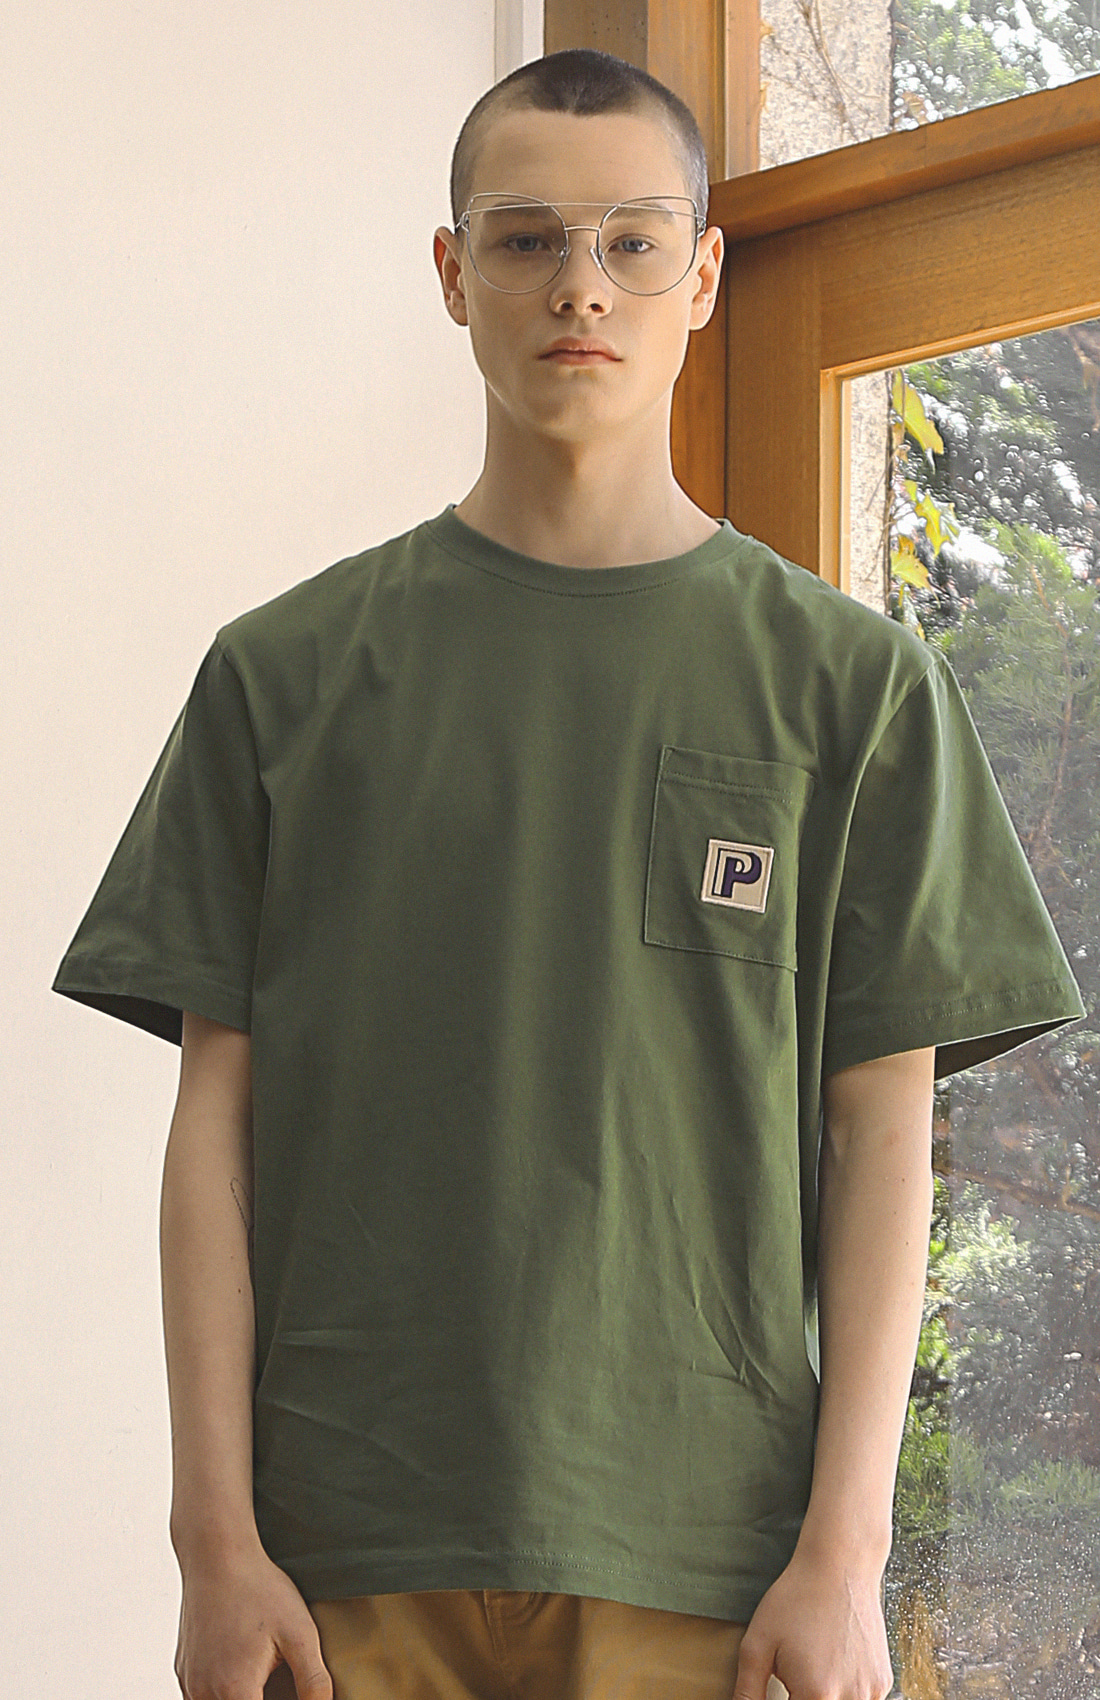 P POCKET T-SHIRTS / GREEN